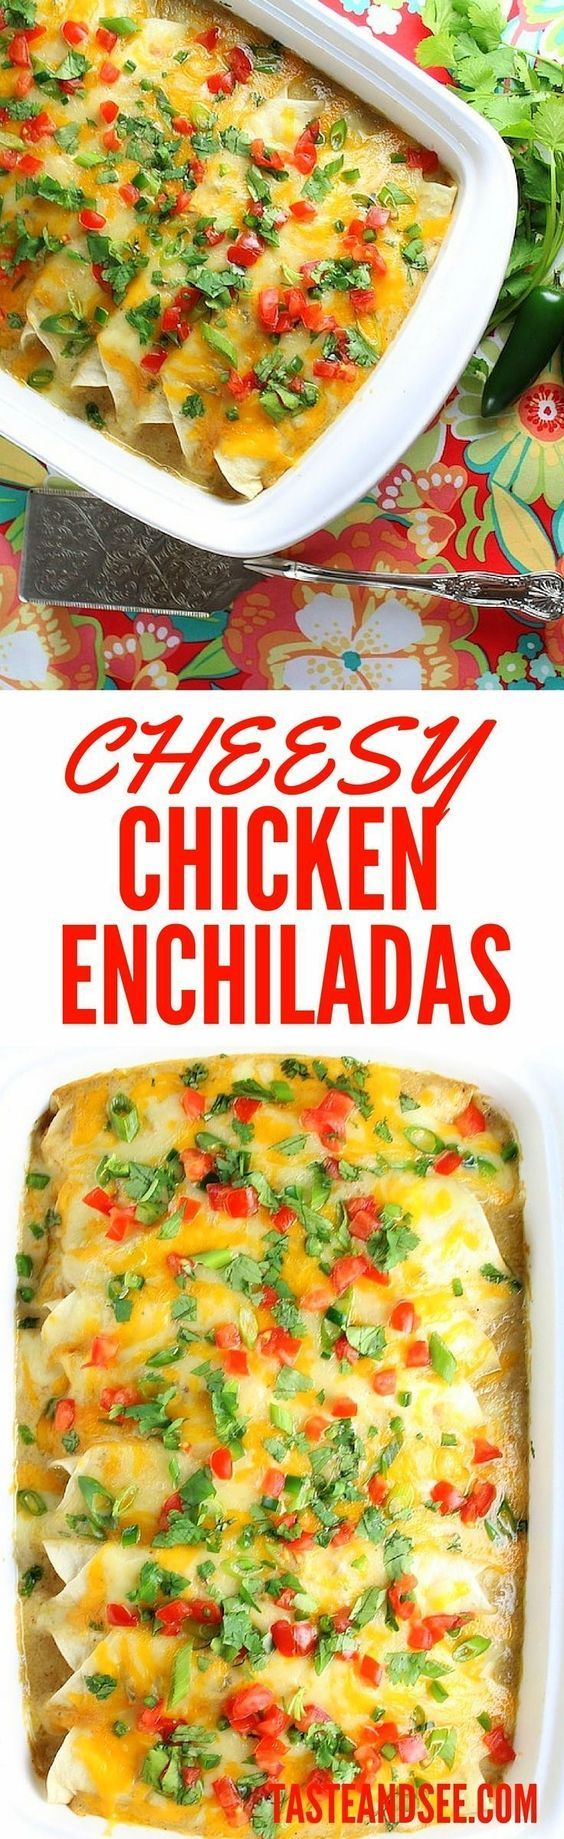 These easy Cheesy Chicken #Enchiladas are a sure-fire crowd-pleaser! With sour cream sauce, jalapeños, onions, garlic, cumin, Monterey Jack, and cheddar cheese. http://tasteandsee.com